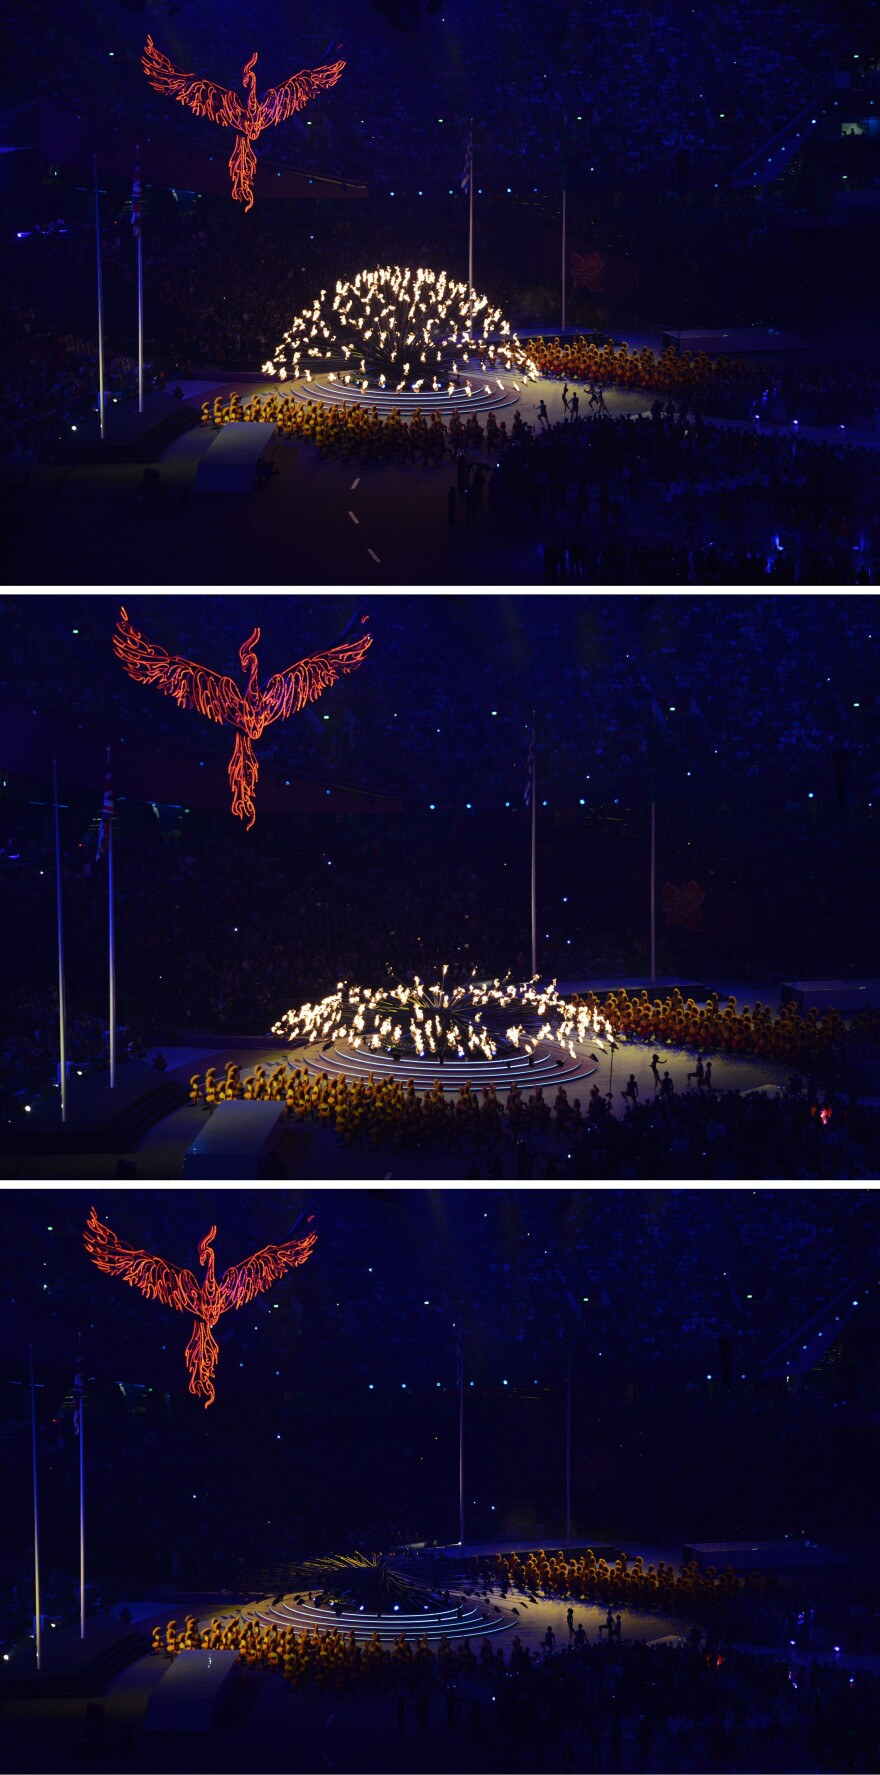 Three photos show the Olympic flame slowly extinguishing at London's Olympic Stadium, as the London 2012 Games come to an end. The next Summer Olympics will be in Rio de Janeiro, Brazil.